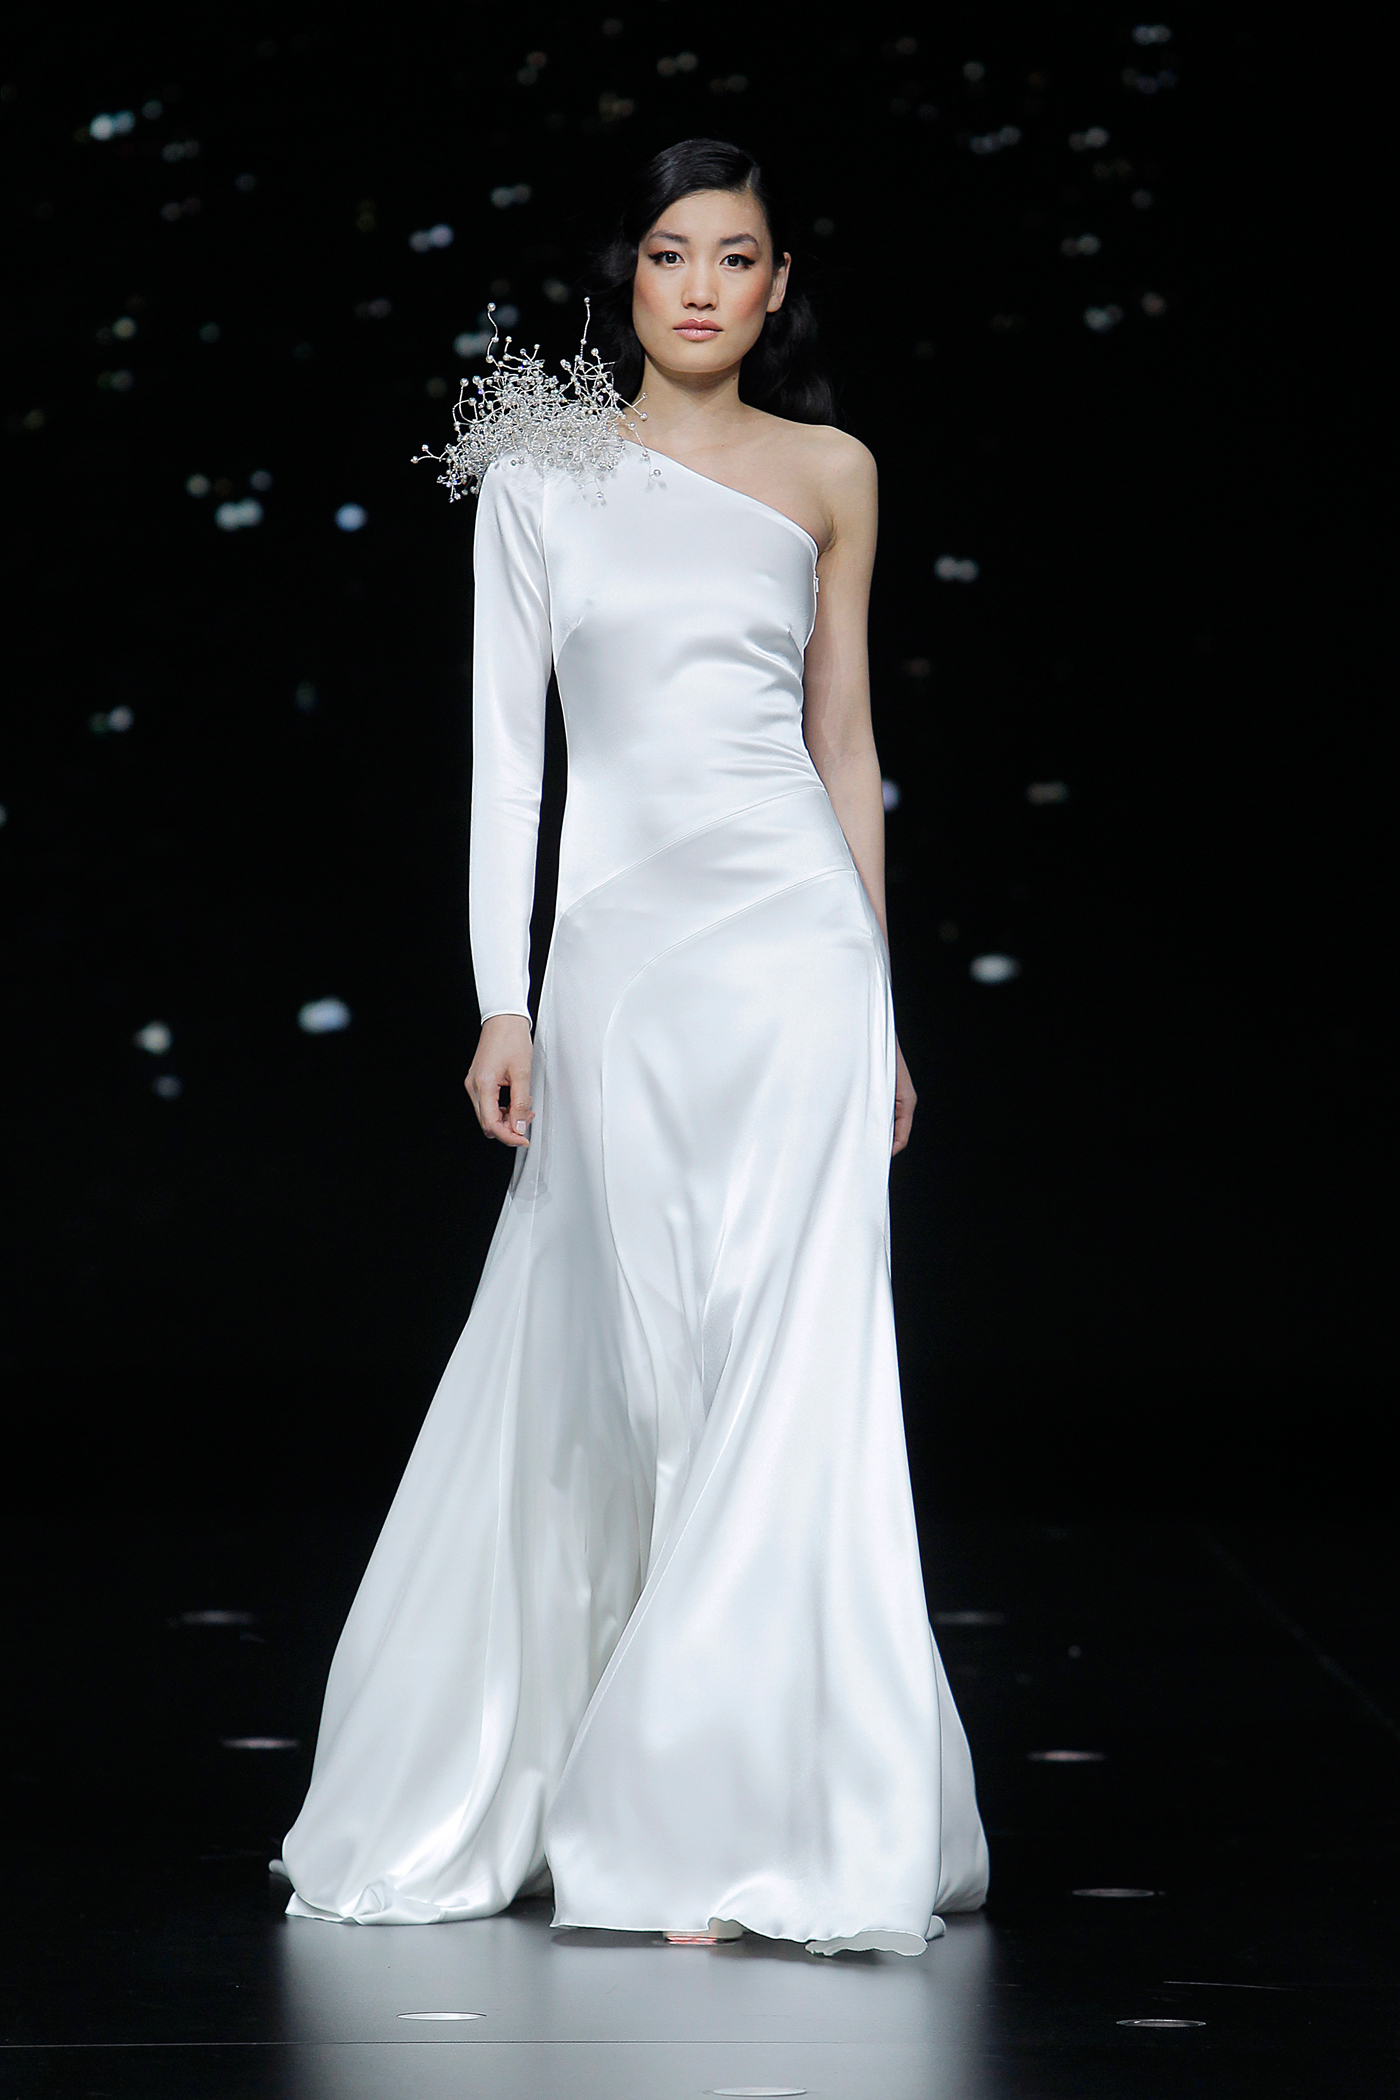 pronovias asymmetric wedding dress with sculptural beading on one shoulder spring 2020